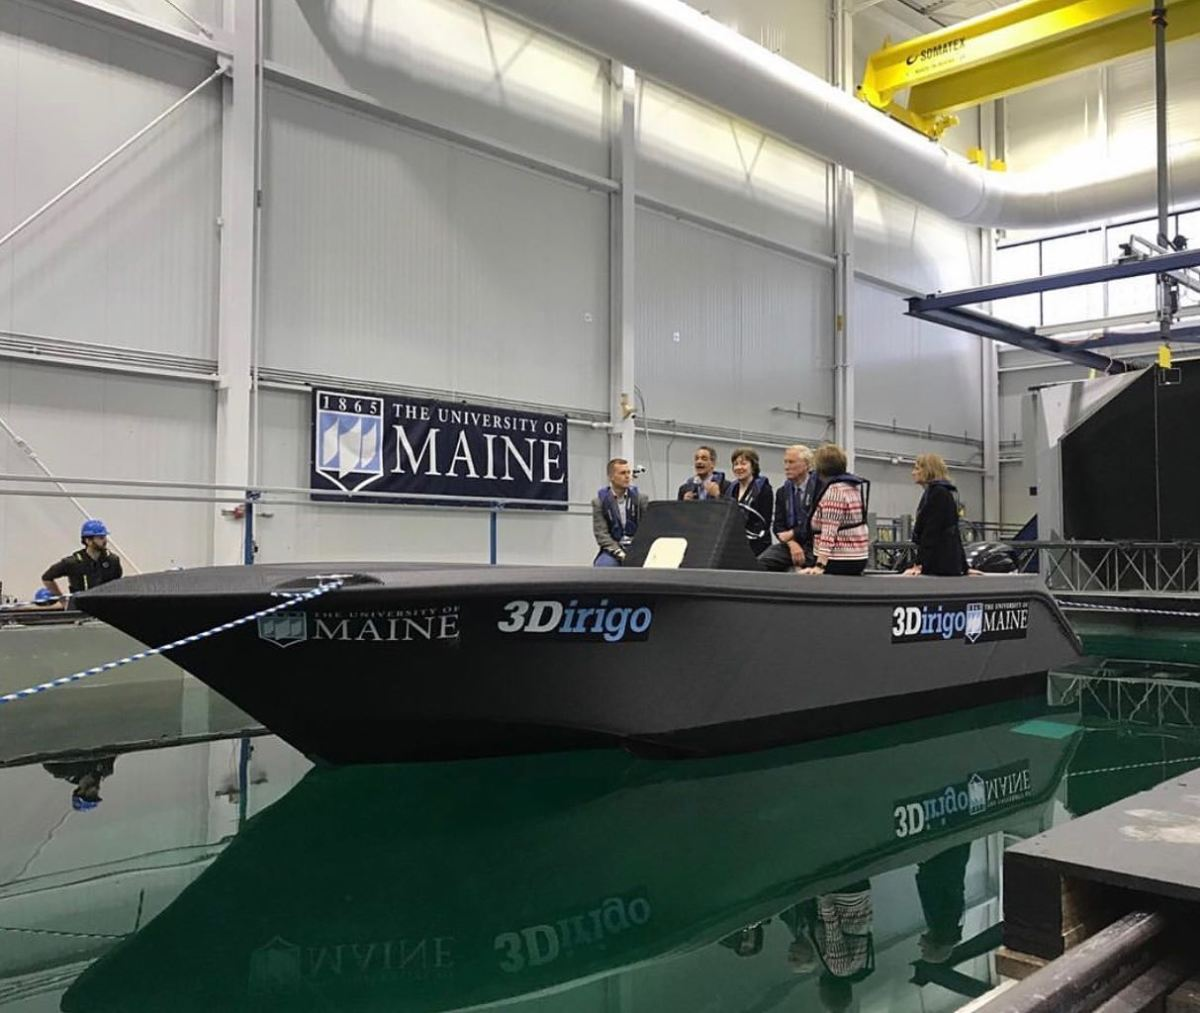 Largest 3D Printer Was Used For 3D Printing This Boat By University Of Maine